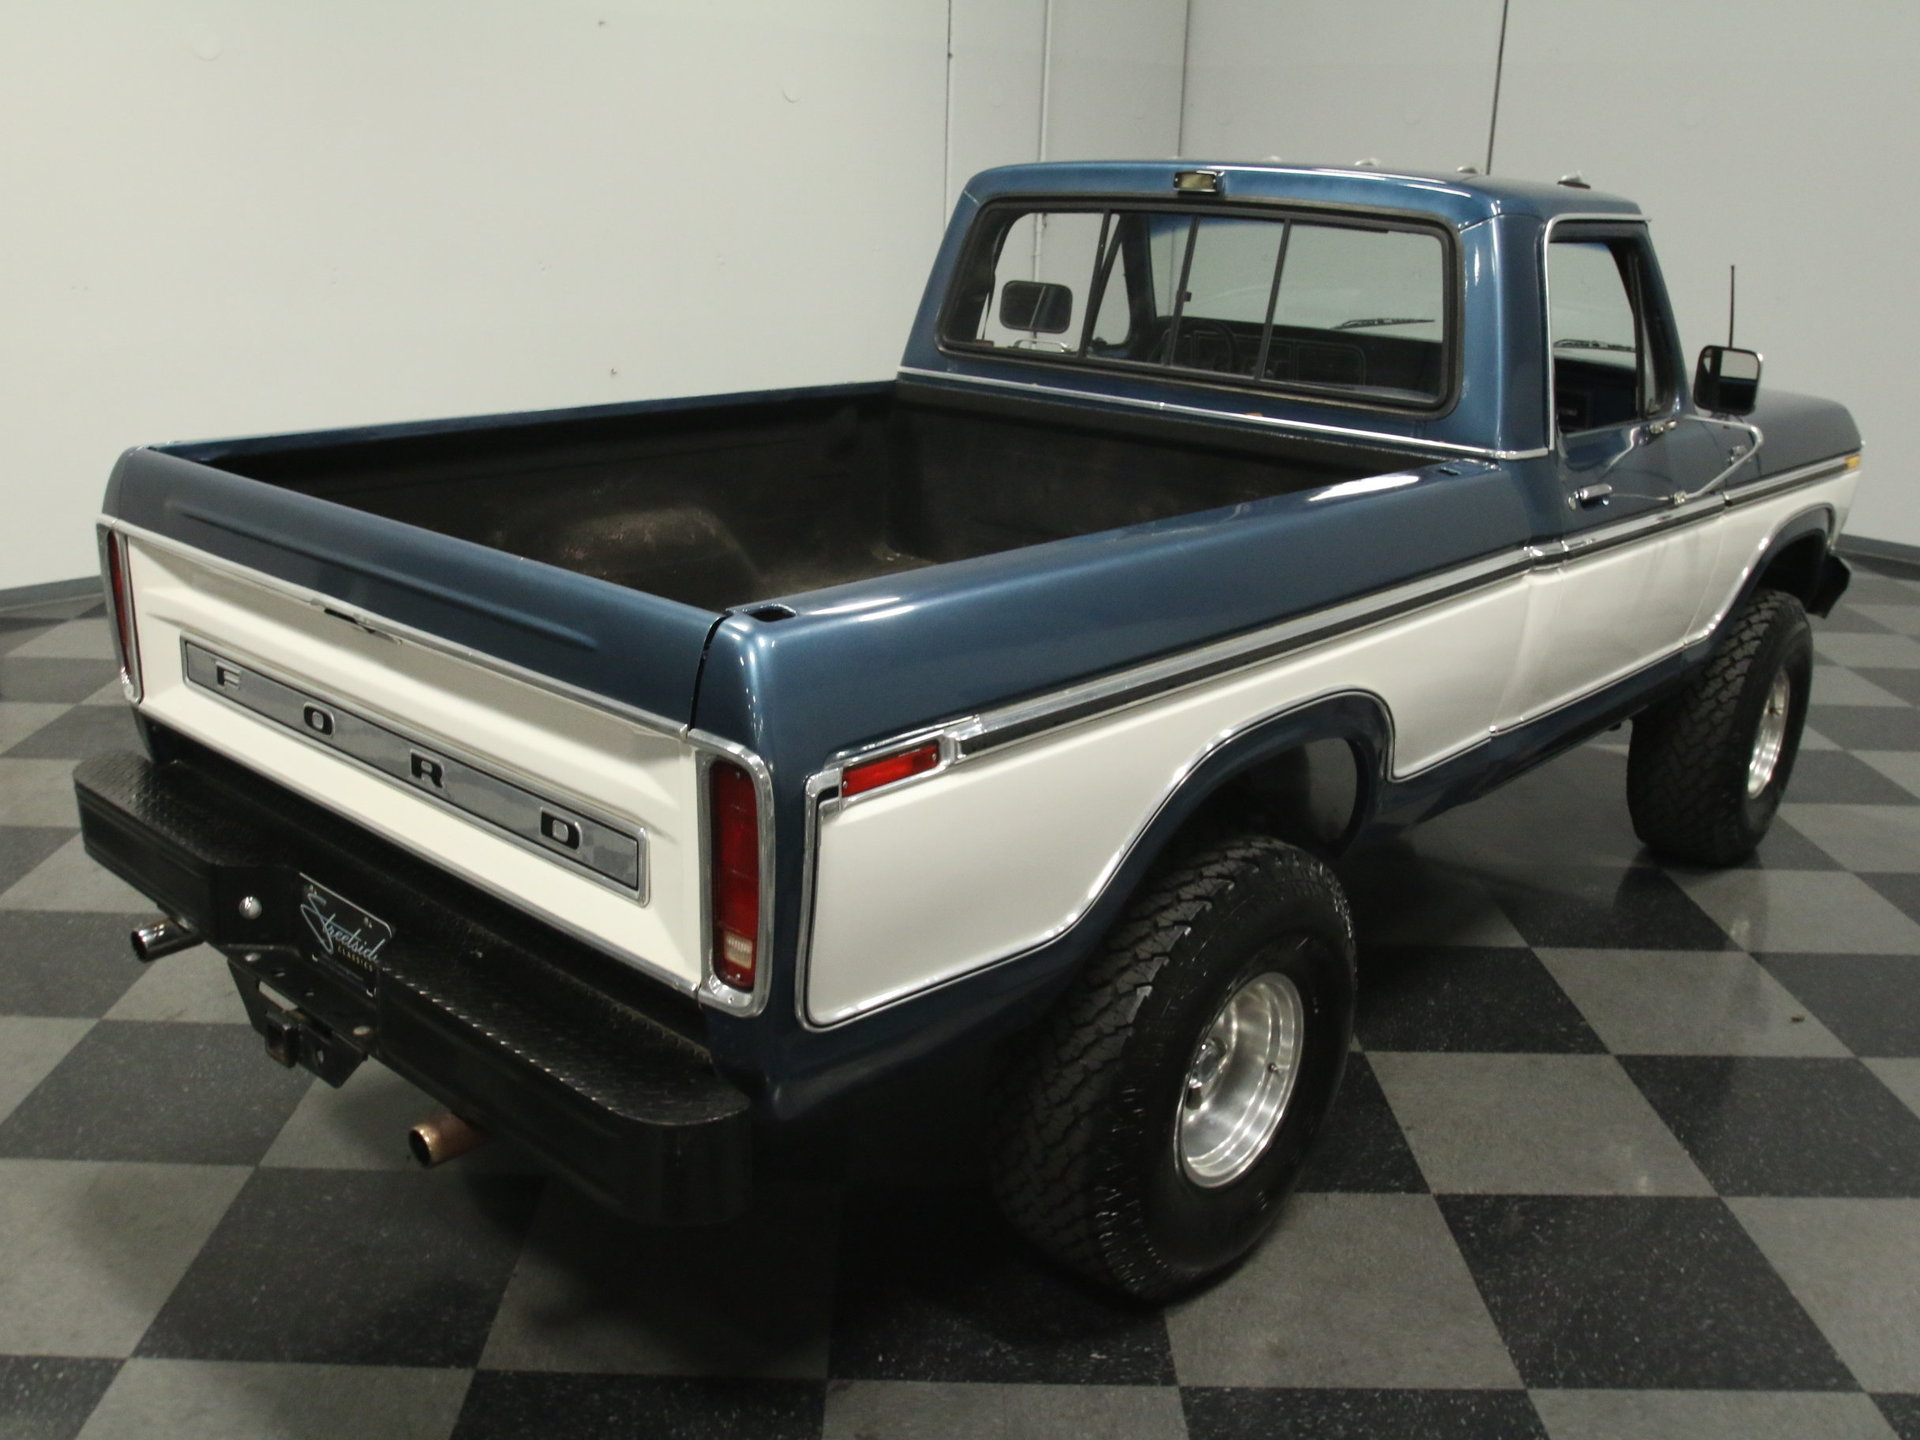 1979 Ford F 100 Streetside Classics The Nations Trusted Classic 1955 F100 Pickup Truck Kits View 360